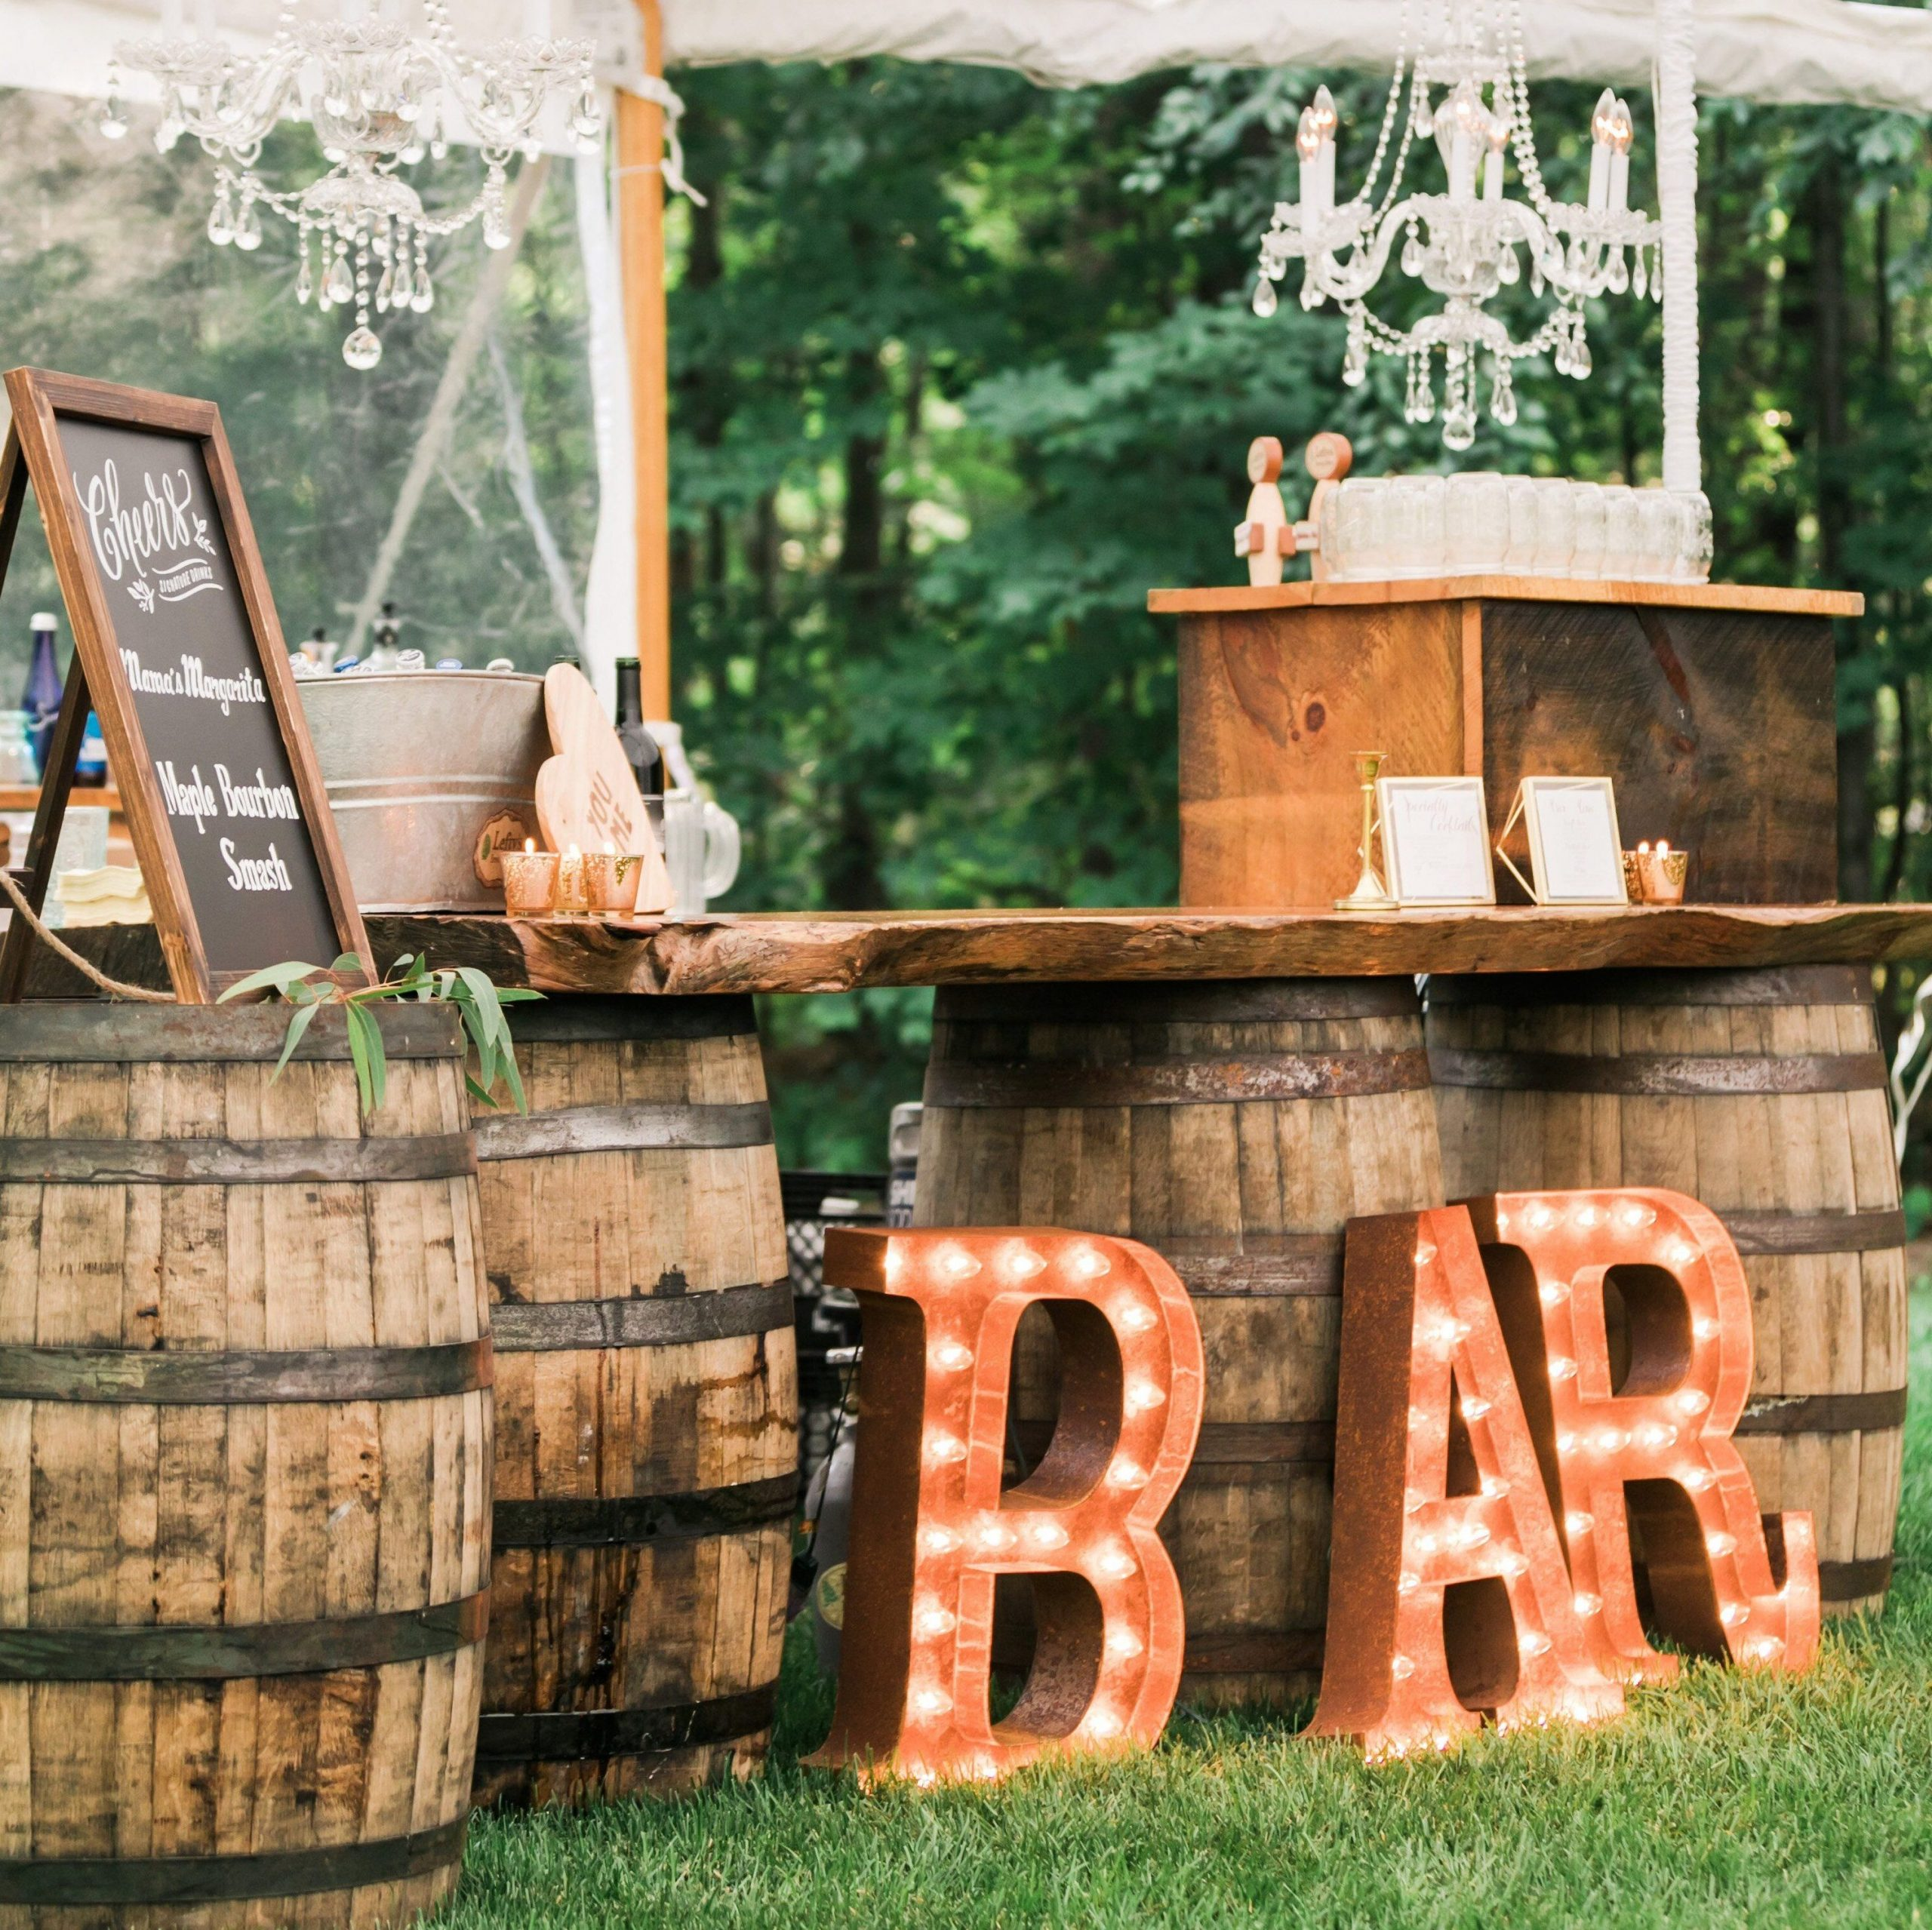 Impressive Wedding Bar Themes and Setup Ideas, An Intimate Wedding at the Brides Family Home in Massachusetts 1 edited 1 scaled